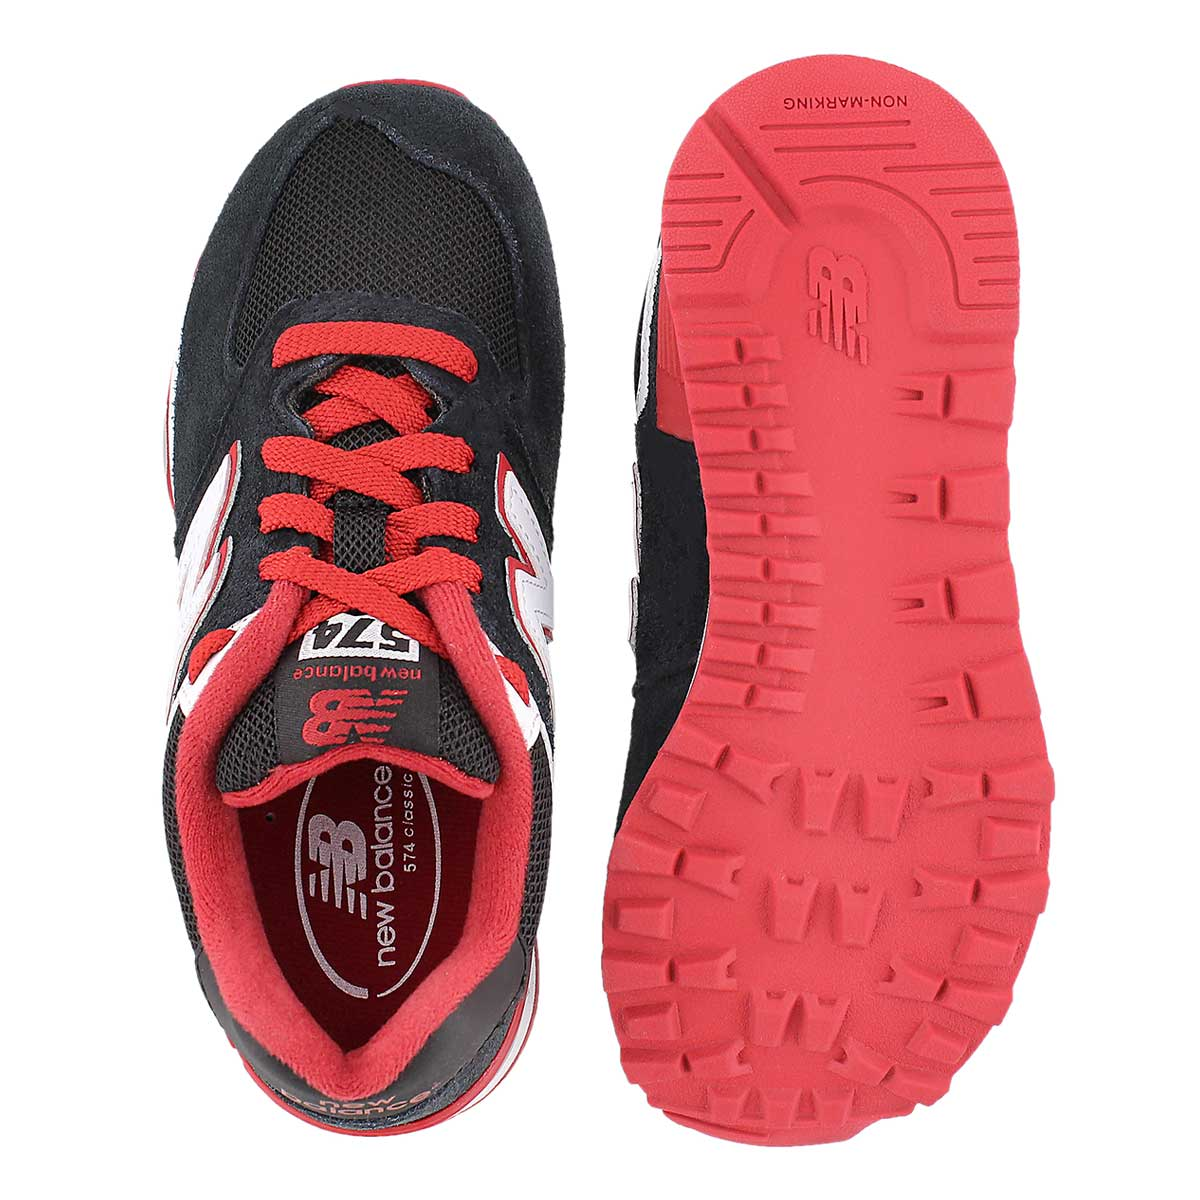 Bys 574 black/red lace up sneaker